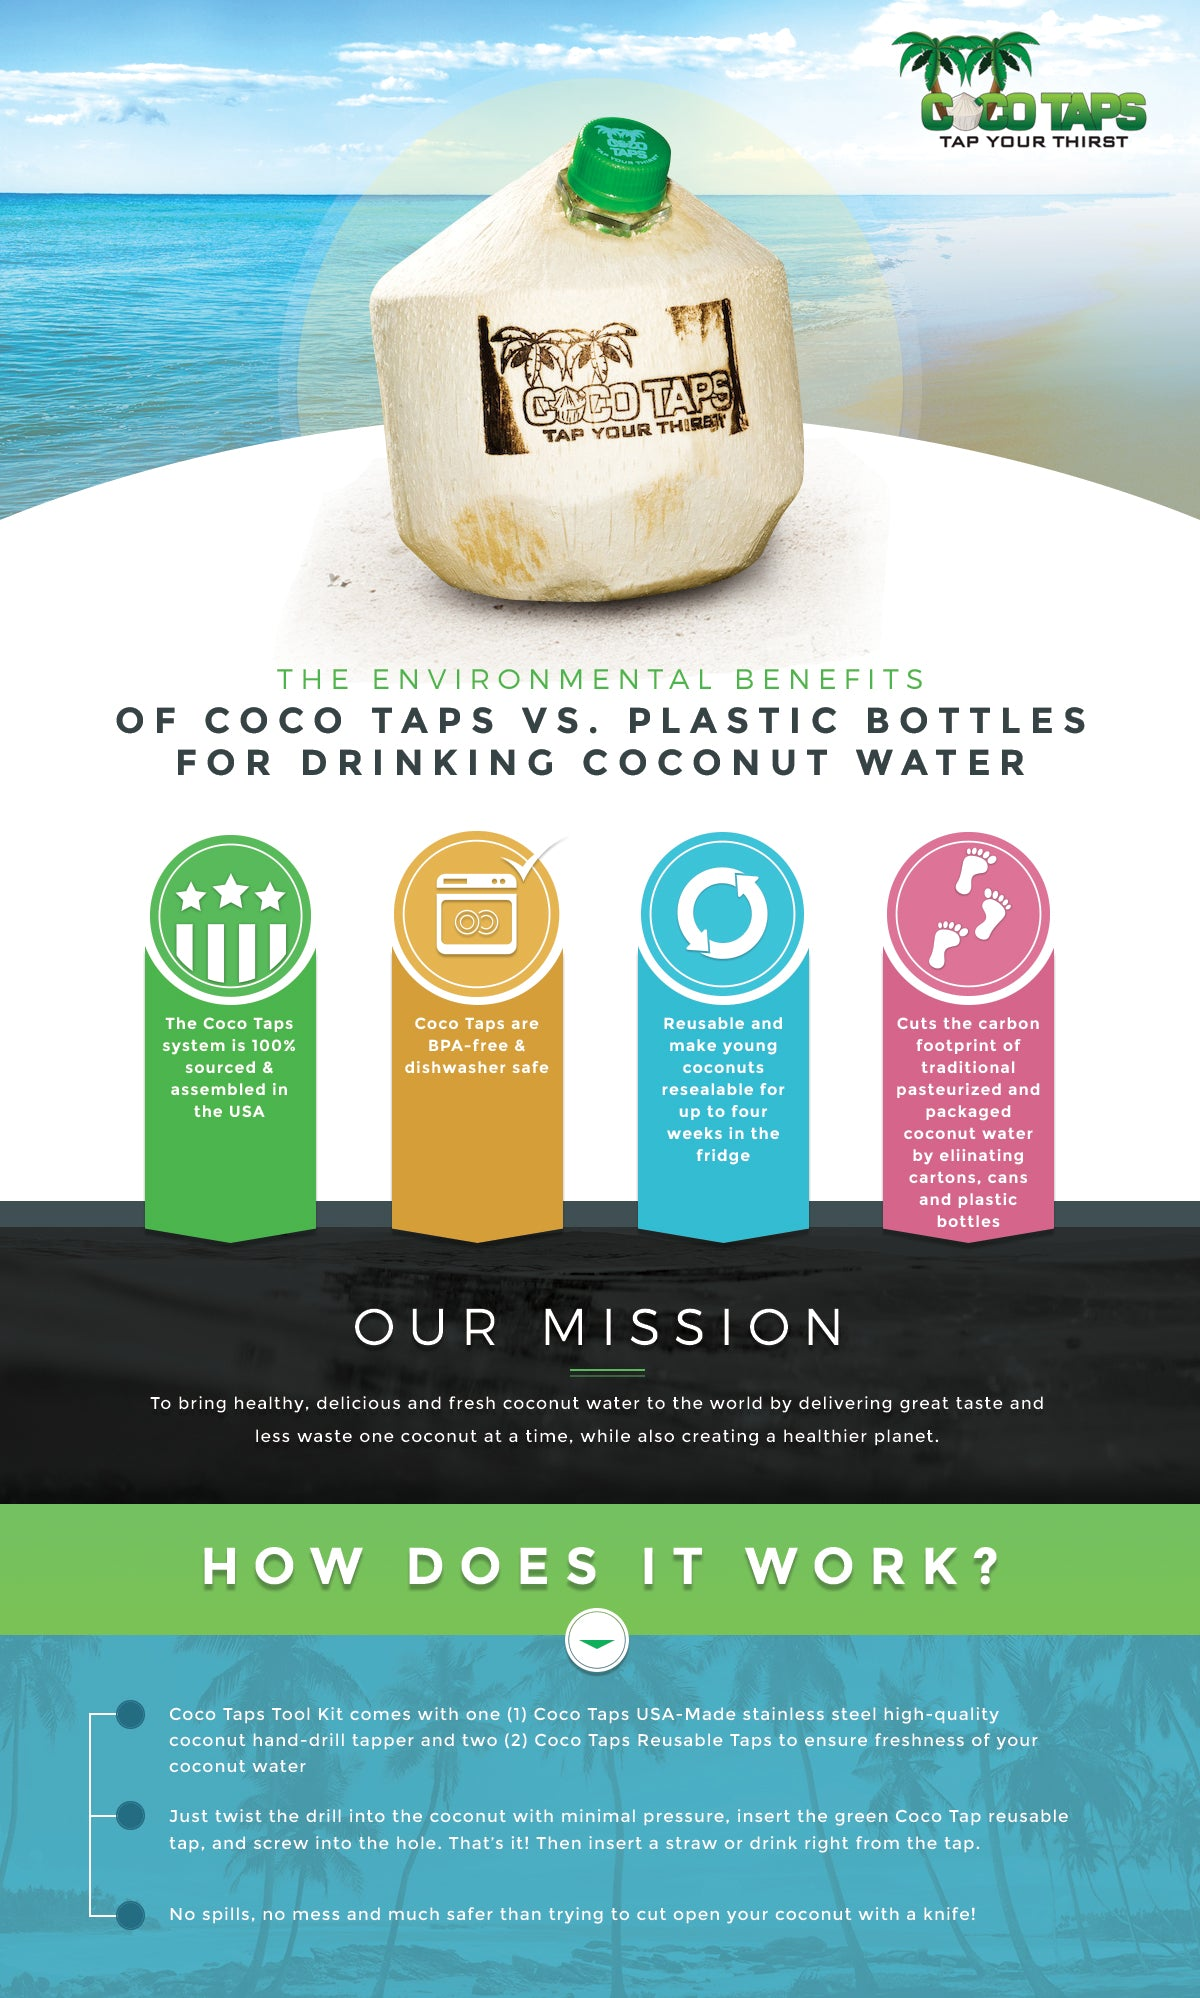 Environmental benefits of Coco Taps